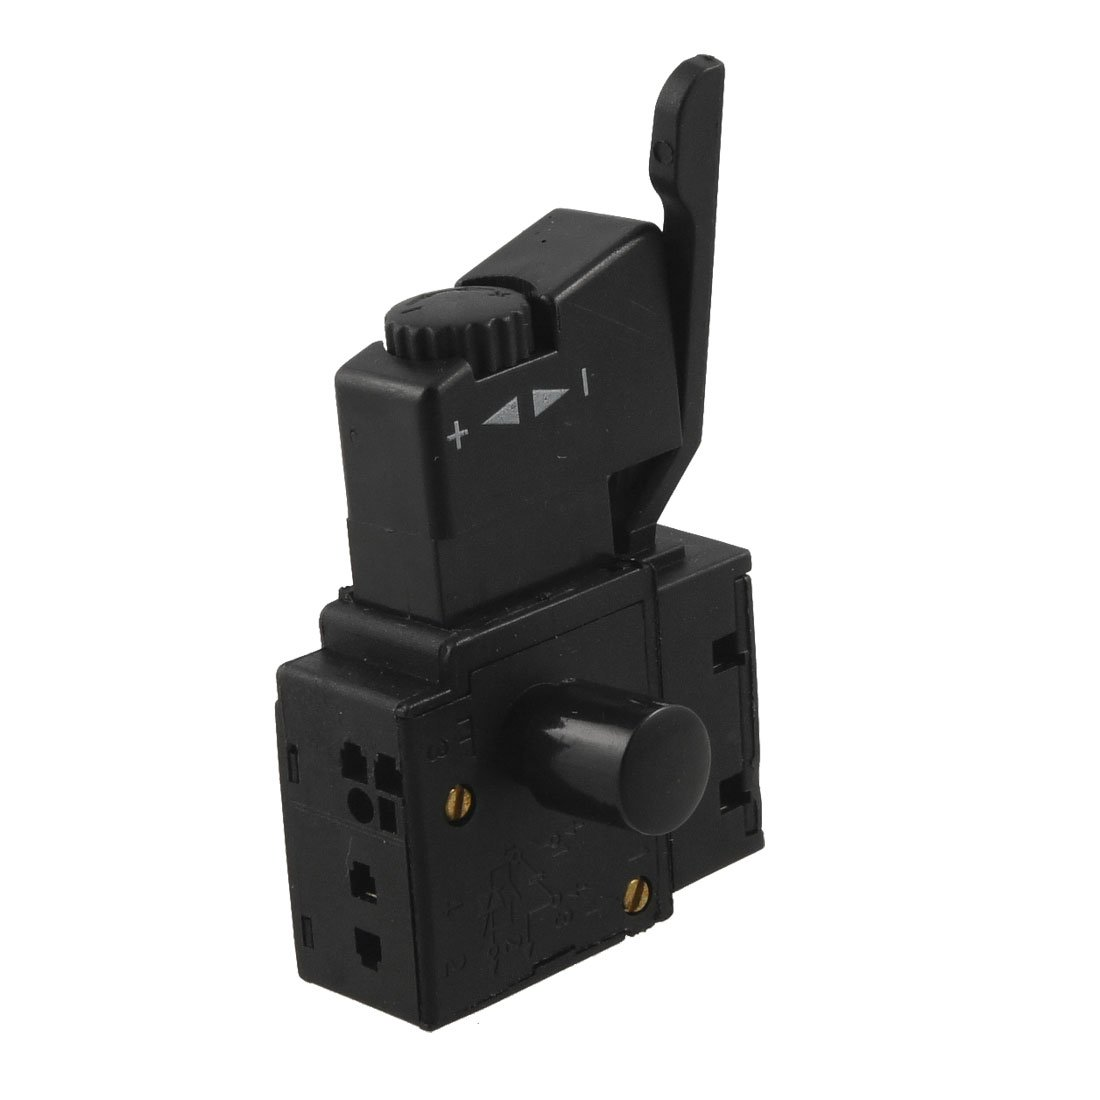 THGS FA2-6/1BEK SPST Lock on Power Tool Trigger Button Switch Black 5e4 ac 250v 4a speed control lock on trigger switch spst for electric drill